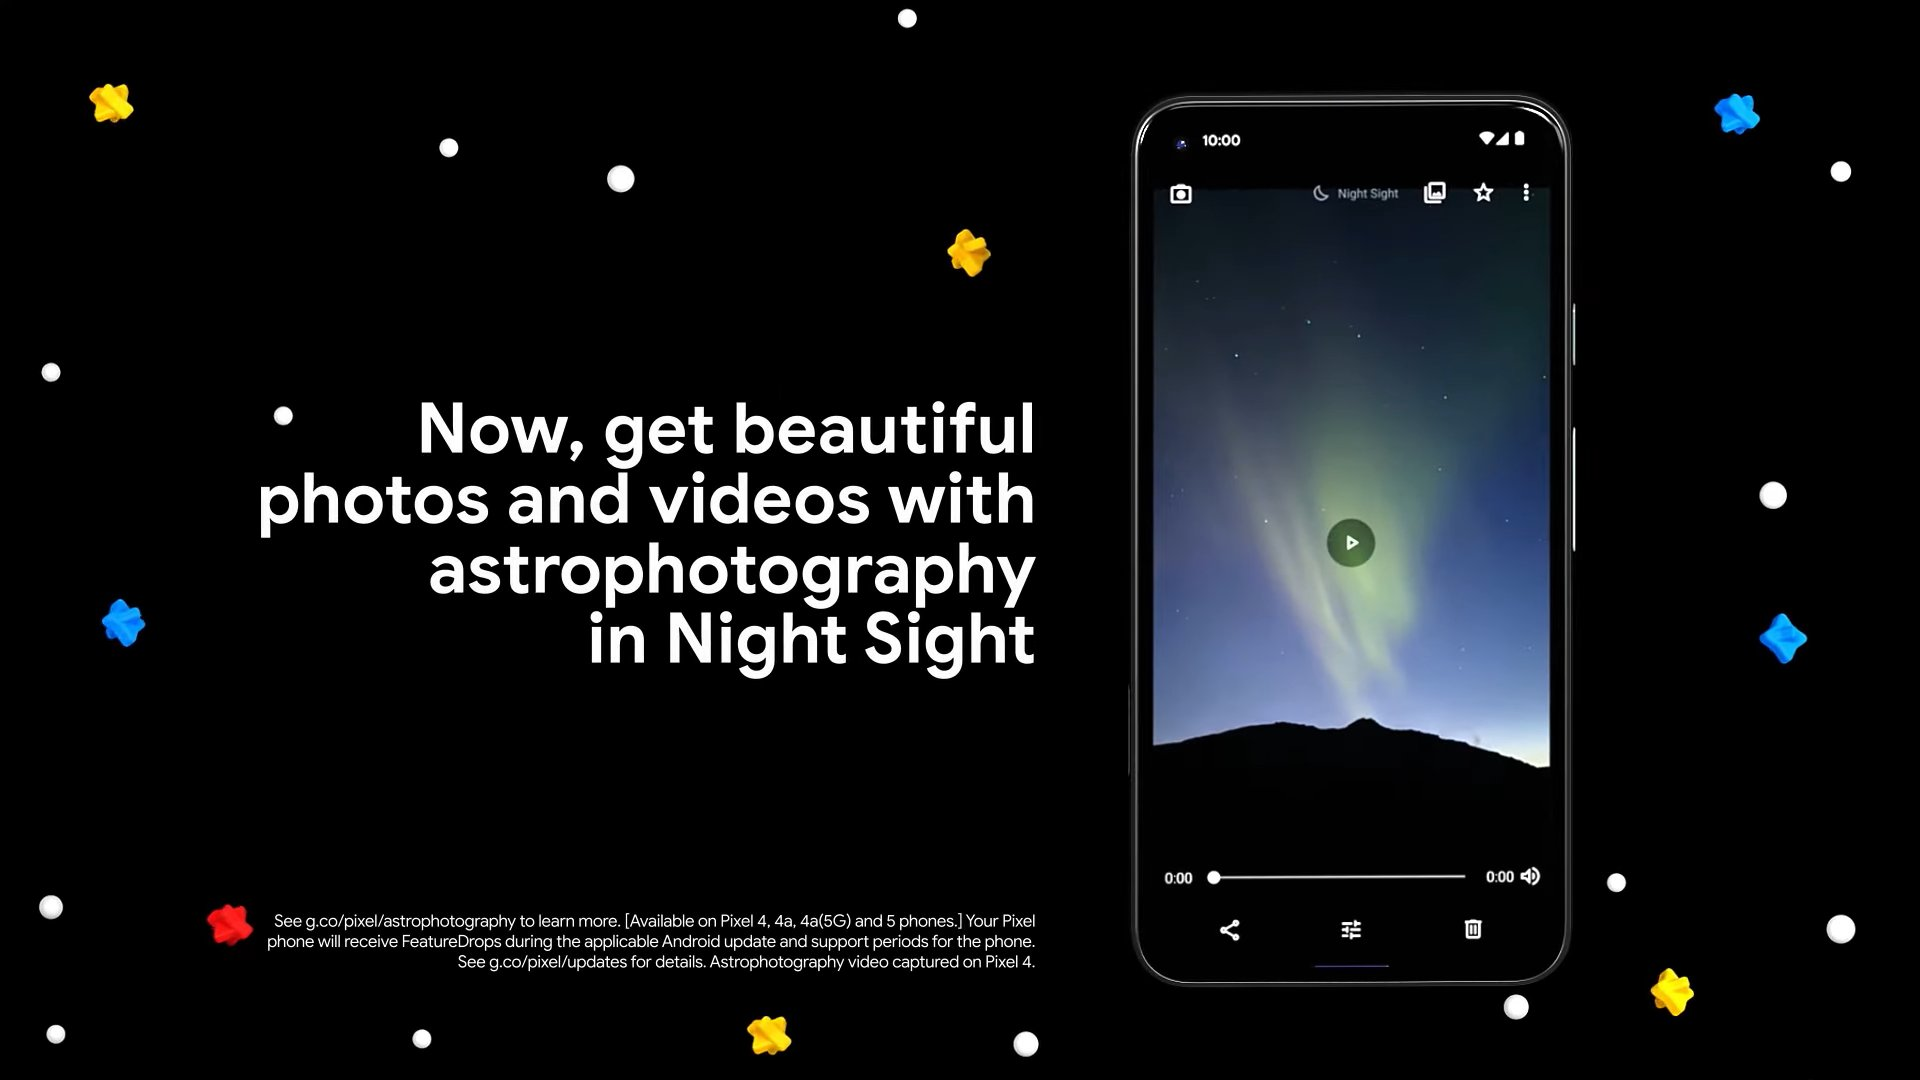 Videos of Astrophotography To Arrive With Google Pixel Feature Drop